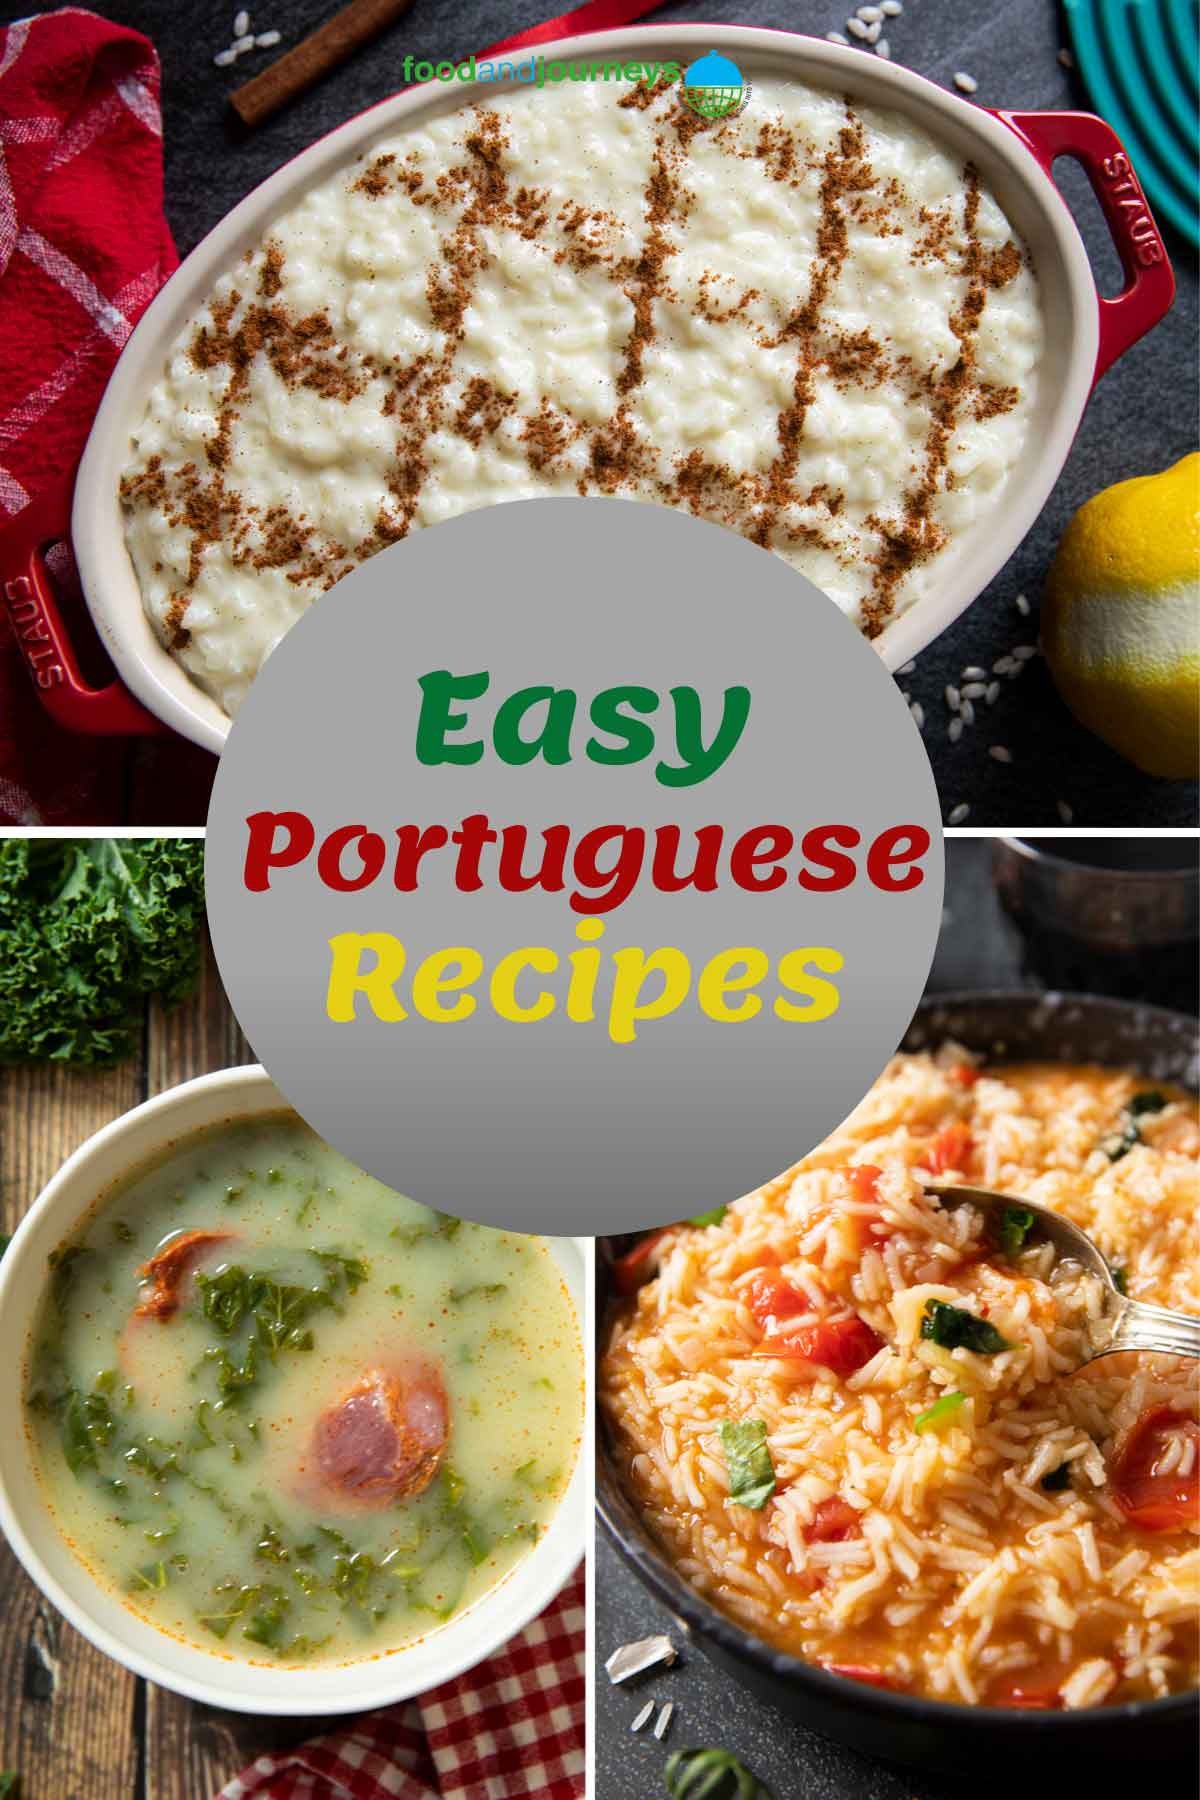 Jun2021, latest collage of images showing different traditional Portuguese dishes.